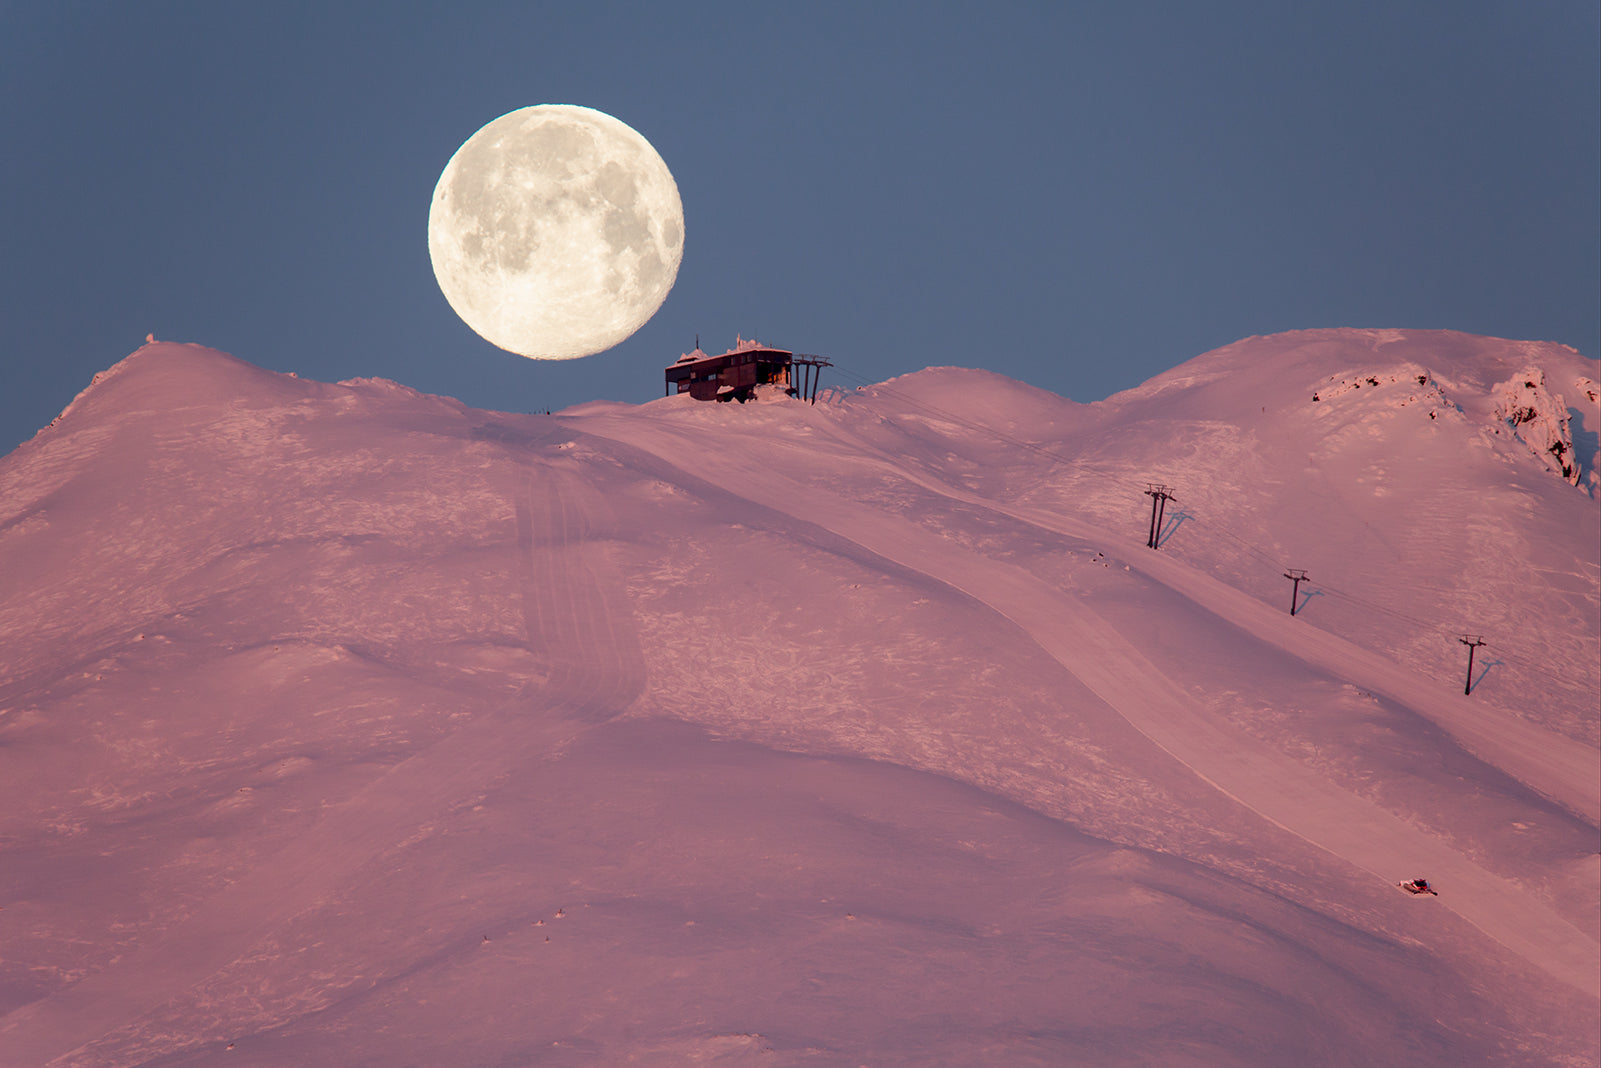 MT. BACHELOR FULL MOONSET